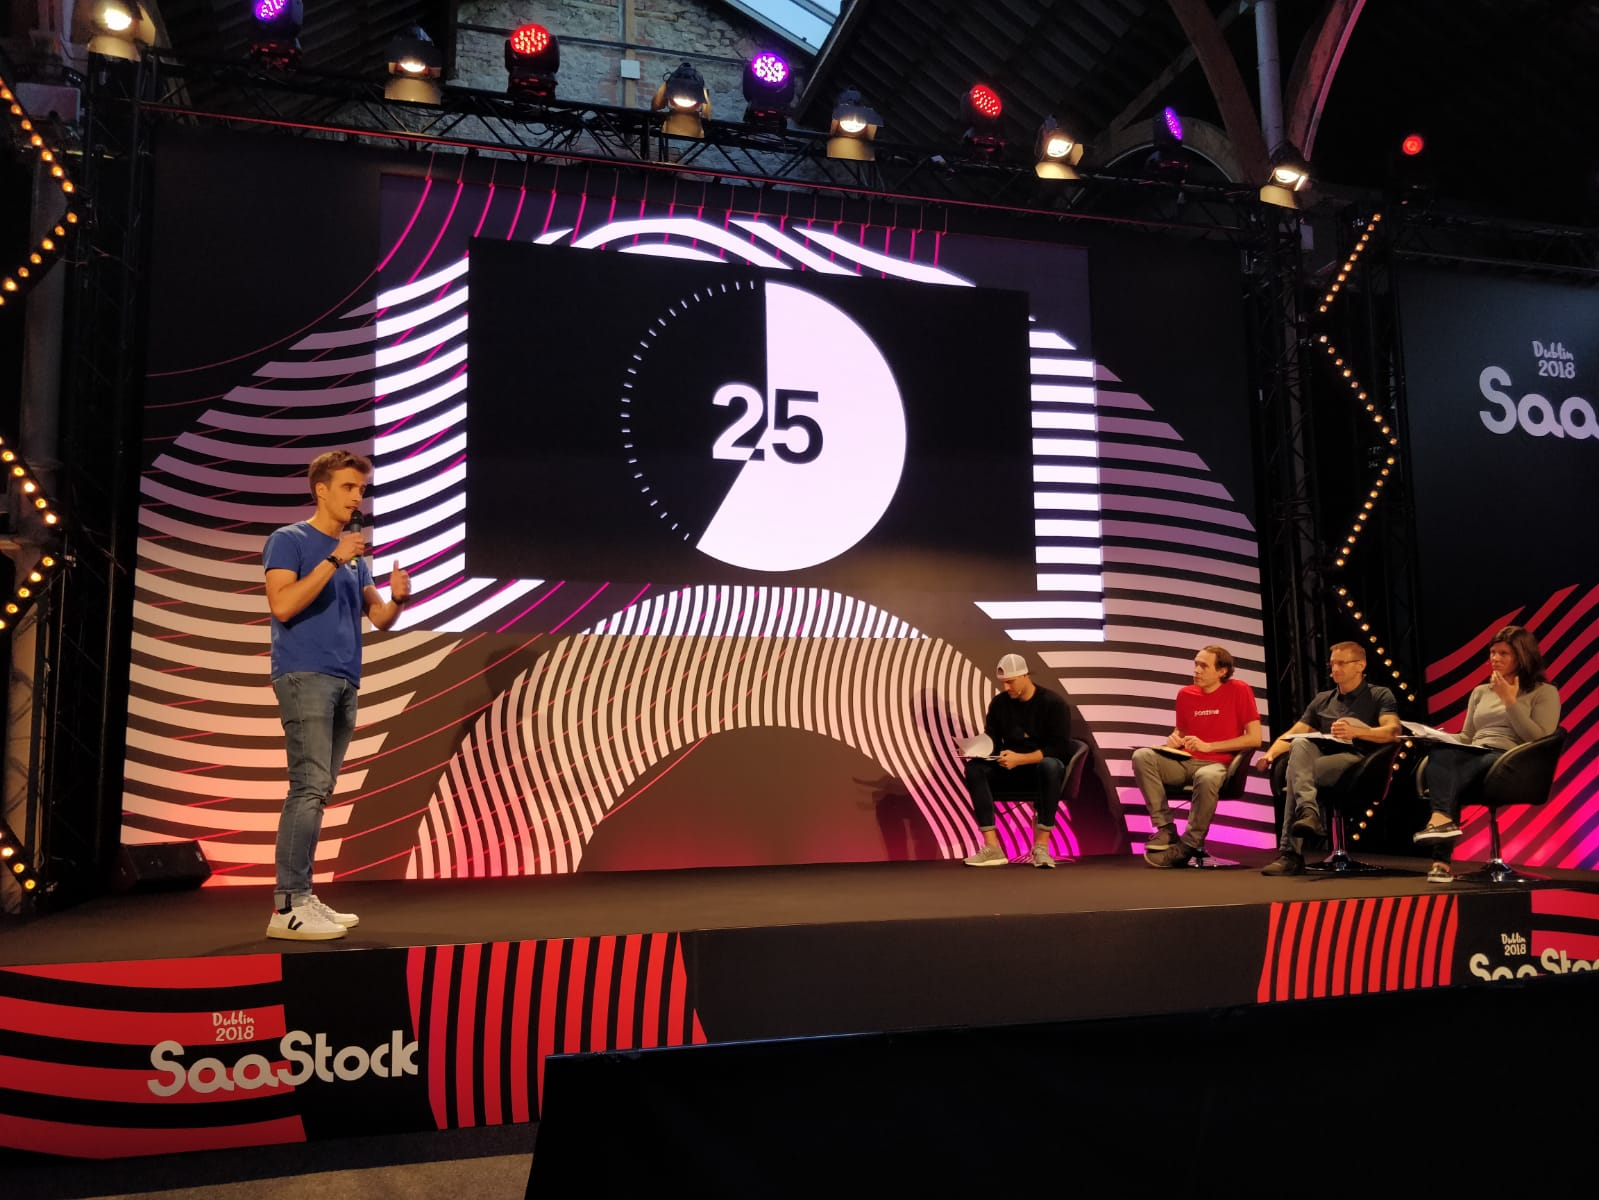 Cumul.io pitching at SaaStock